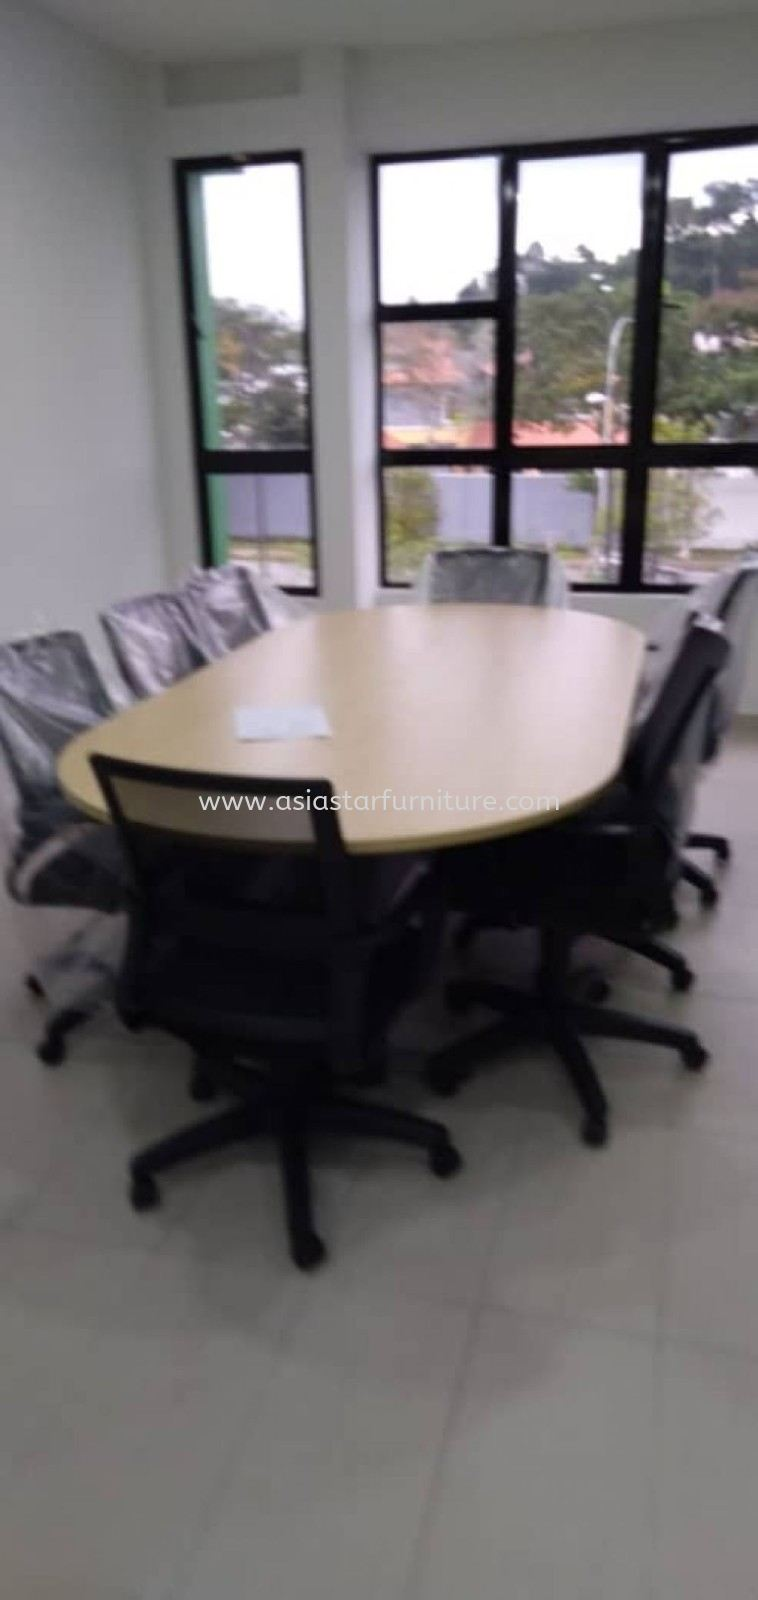 DELIVERY & INSTALLATION TOE 18 MEETING OFFICE TABLE & BATLEY LOW CHAIR OFFICE FURNITURE KEPONG